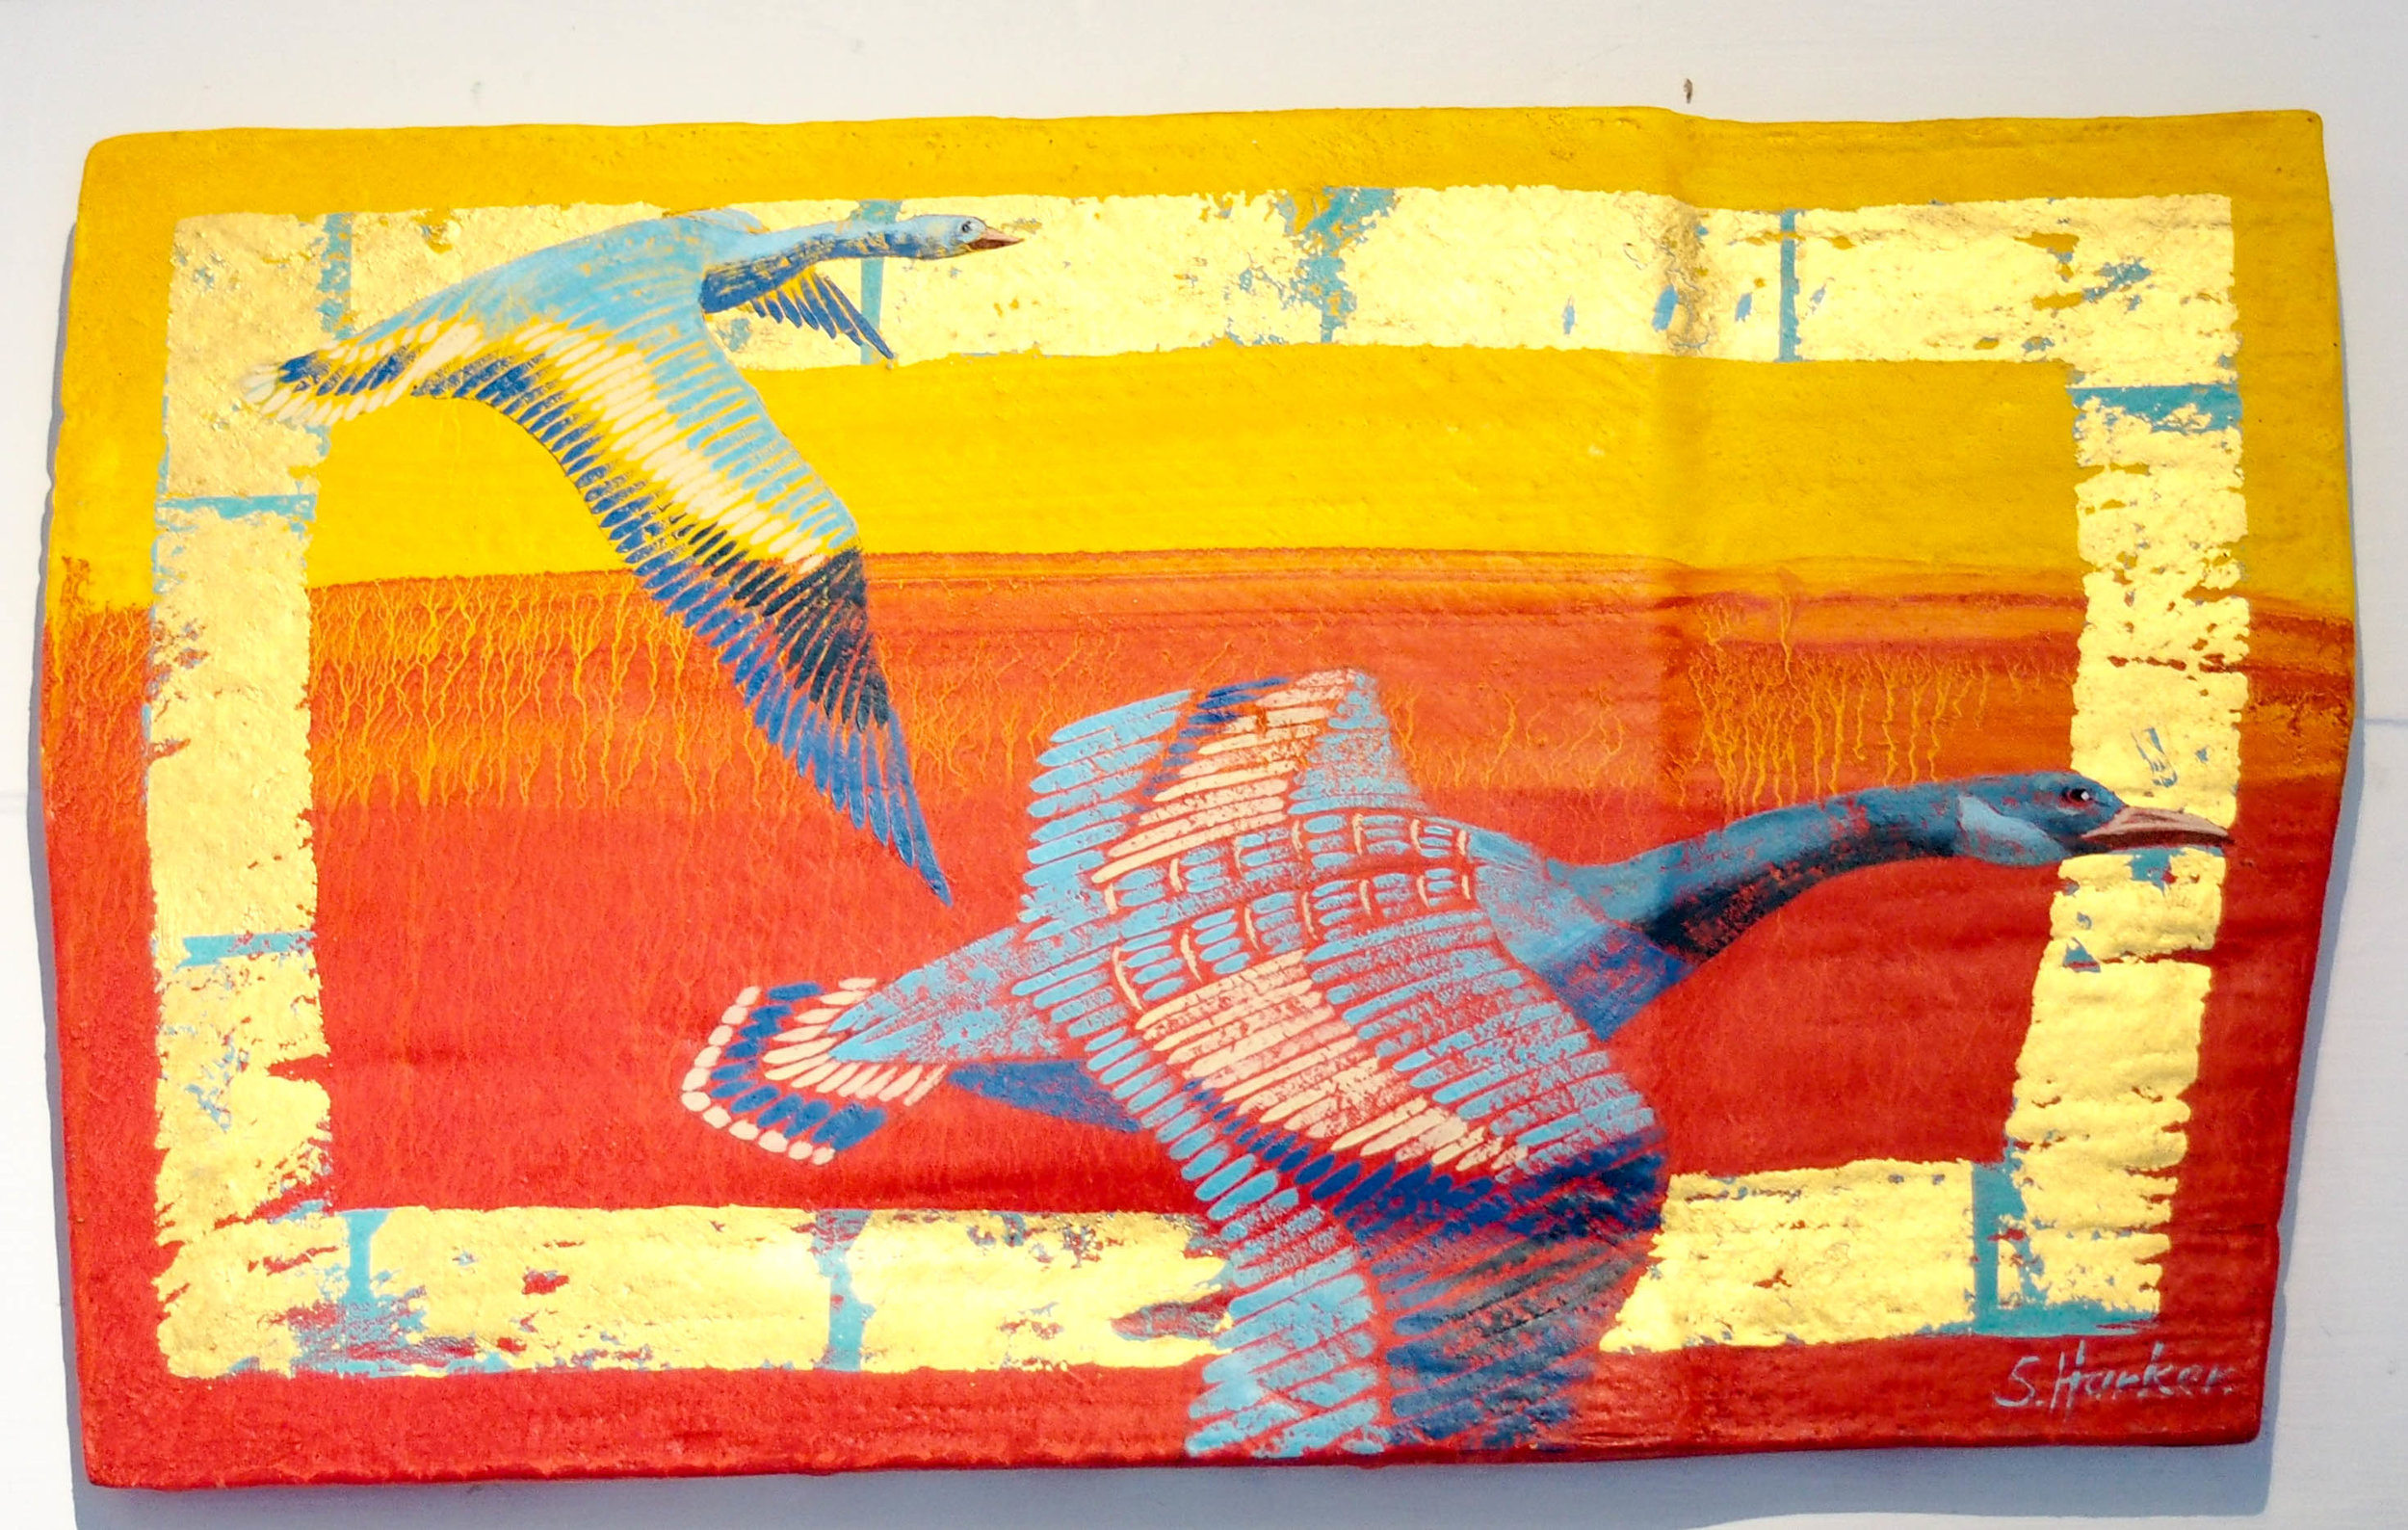 'Geese' by Sallie Harker. Medium: oil and gold leaf on wood. Photo by Jennie Ritchei